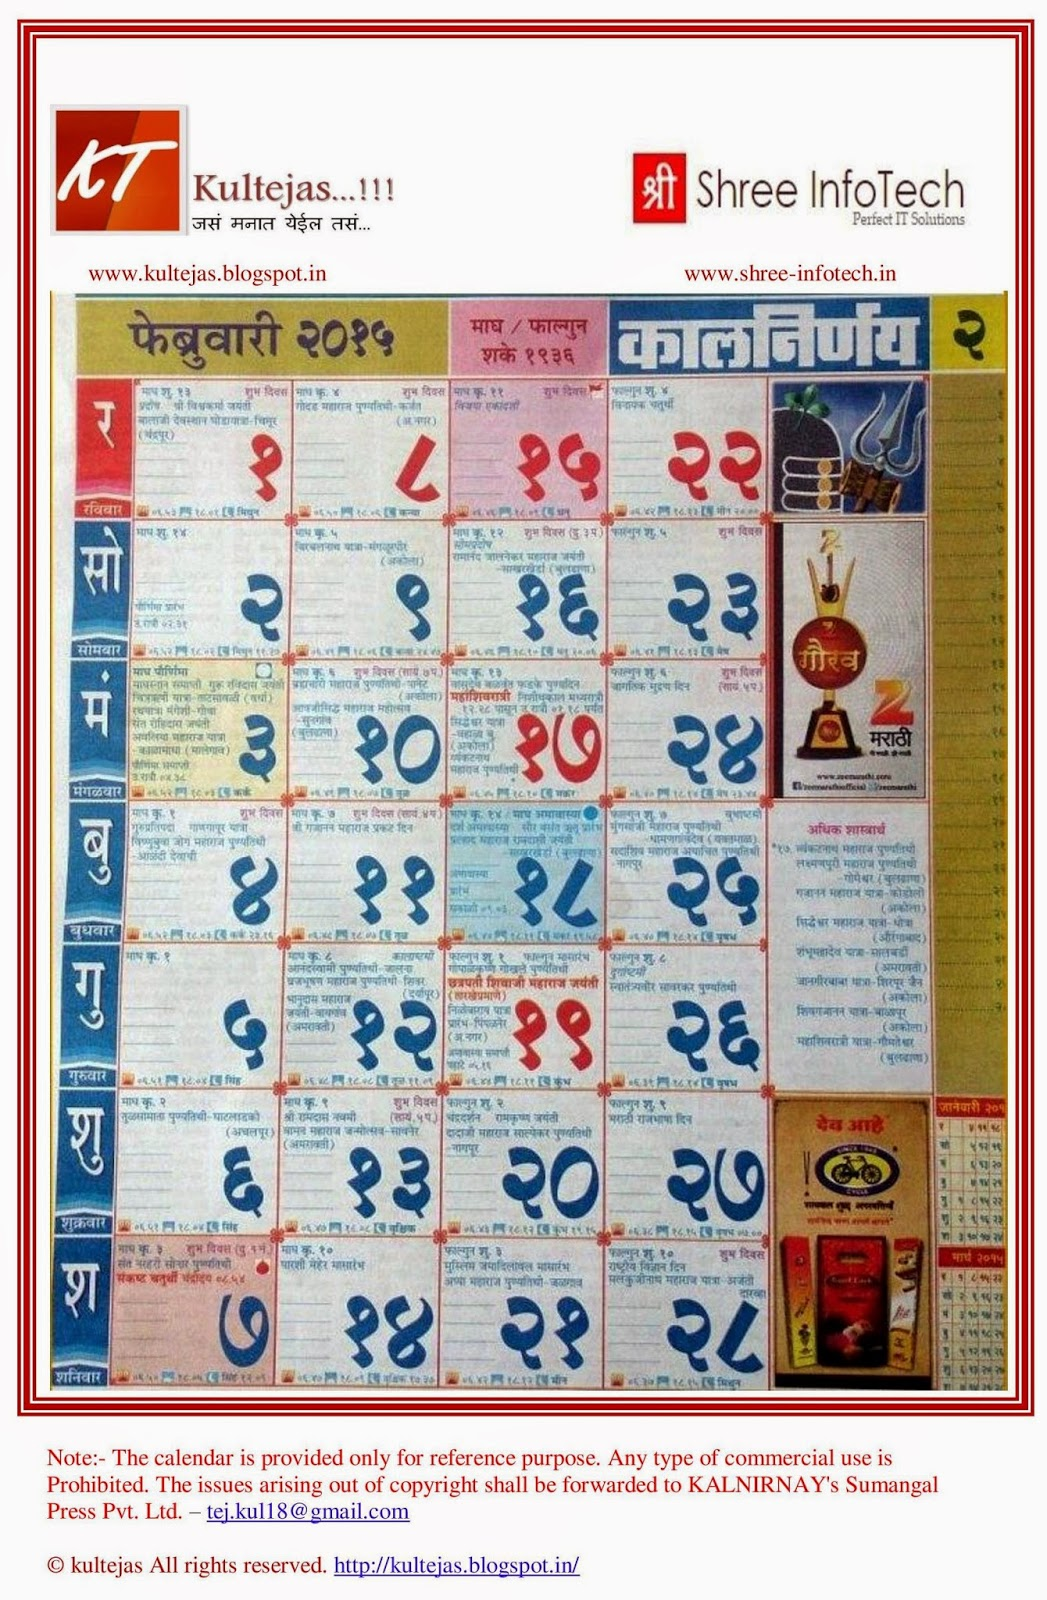 Marathi Calendar 2016 Pdf Free Download - chinacrack's blog